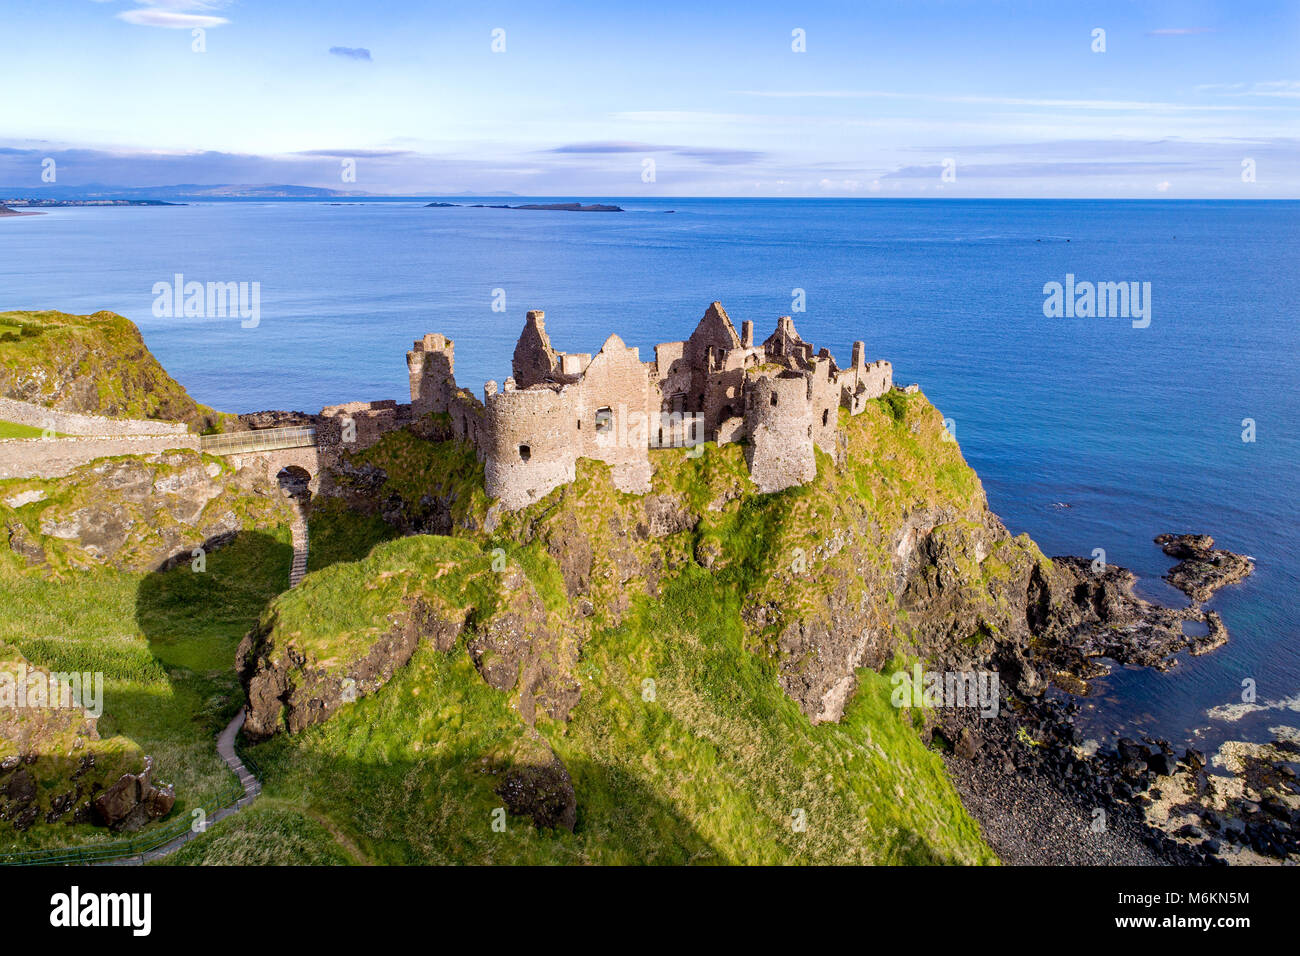 Ruins of medieval Dunluce Castle on a steep cliff. Northern coast of County Antrim, Northern Ireland, UK. Aerial - Stock Image